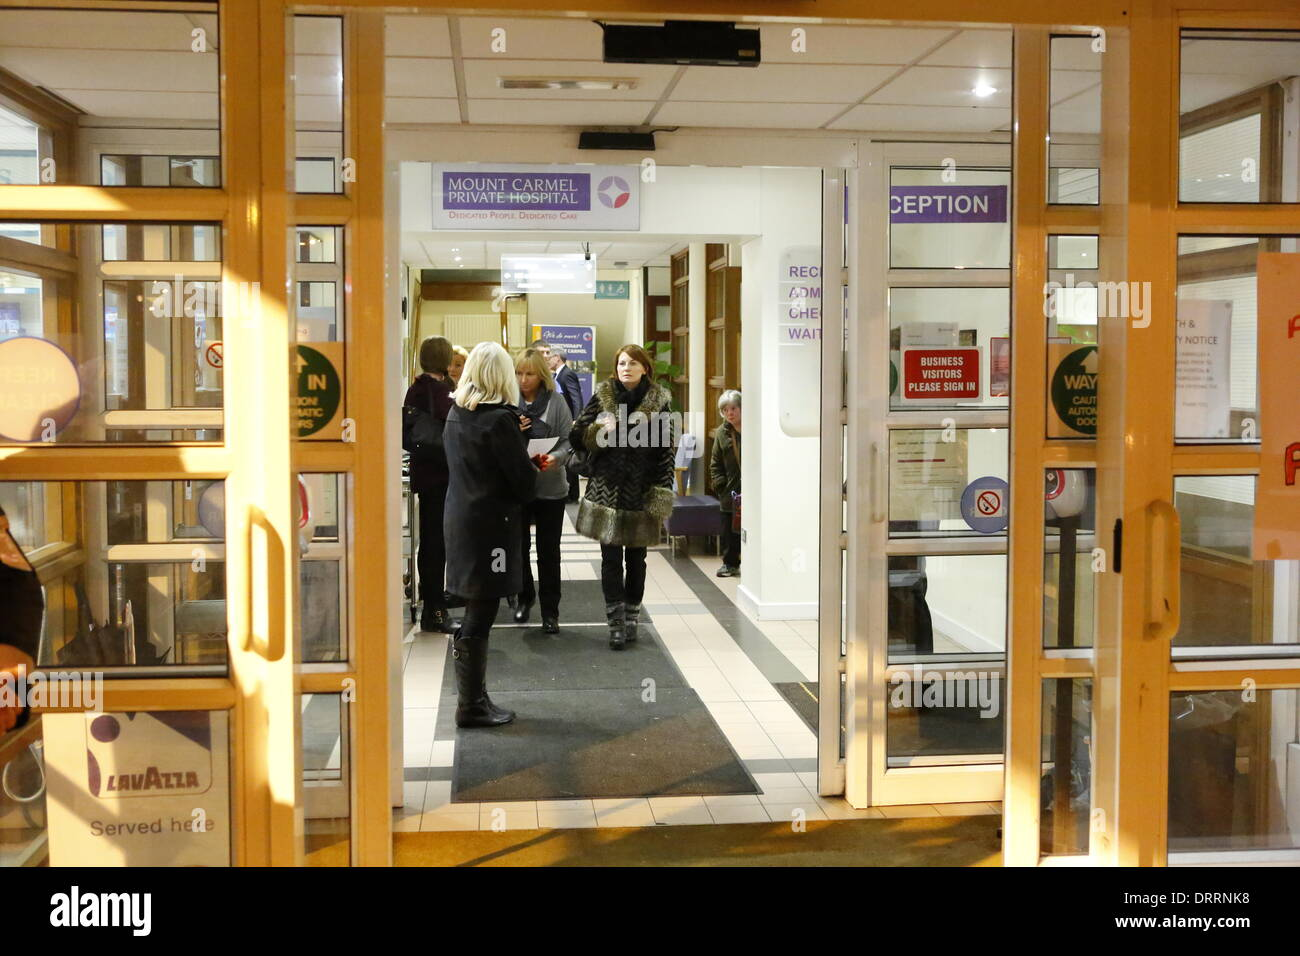 Dublin, Ireland. 31st January 2014. Hospital staff and supporters stand in the hospital entrance hall. Staff and Stock Photo